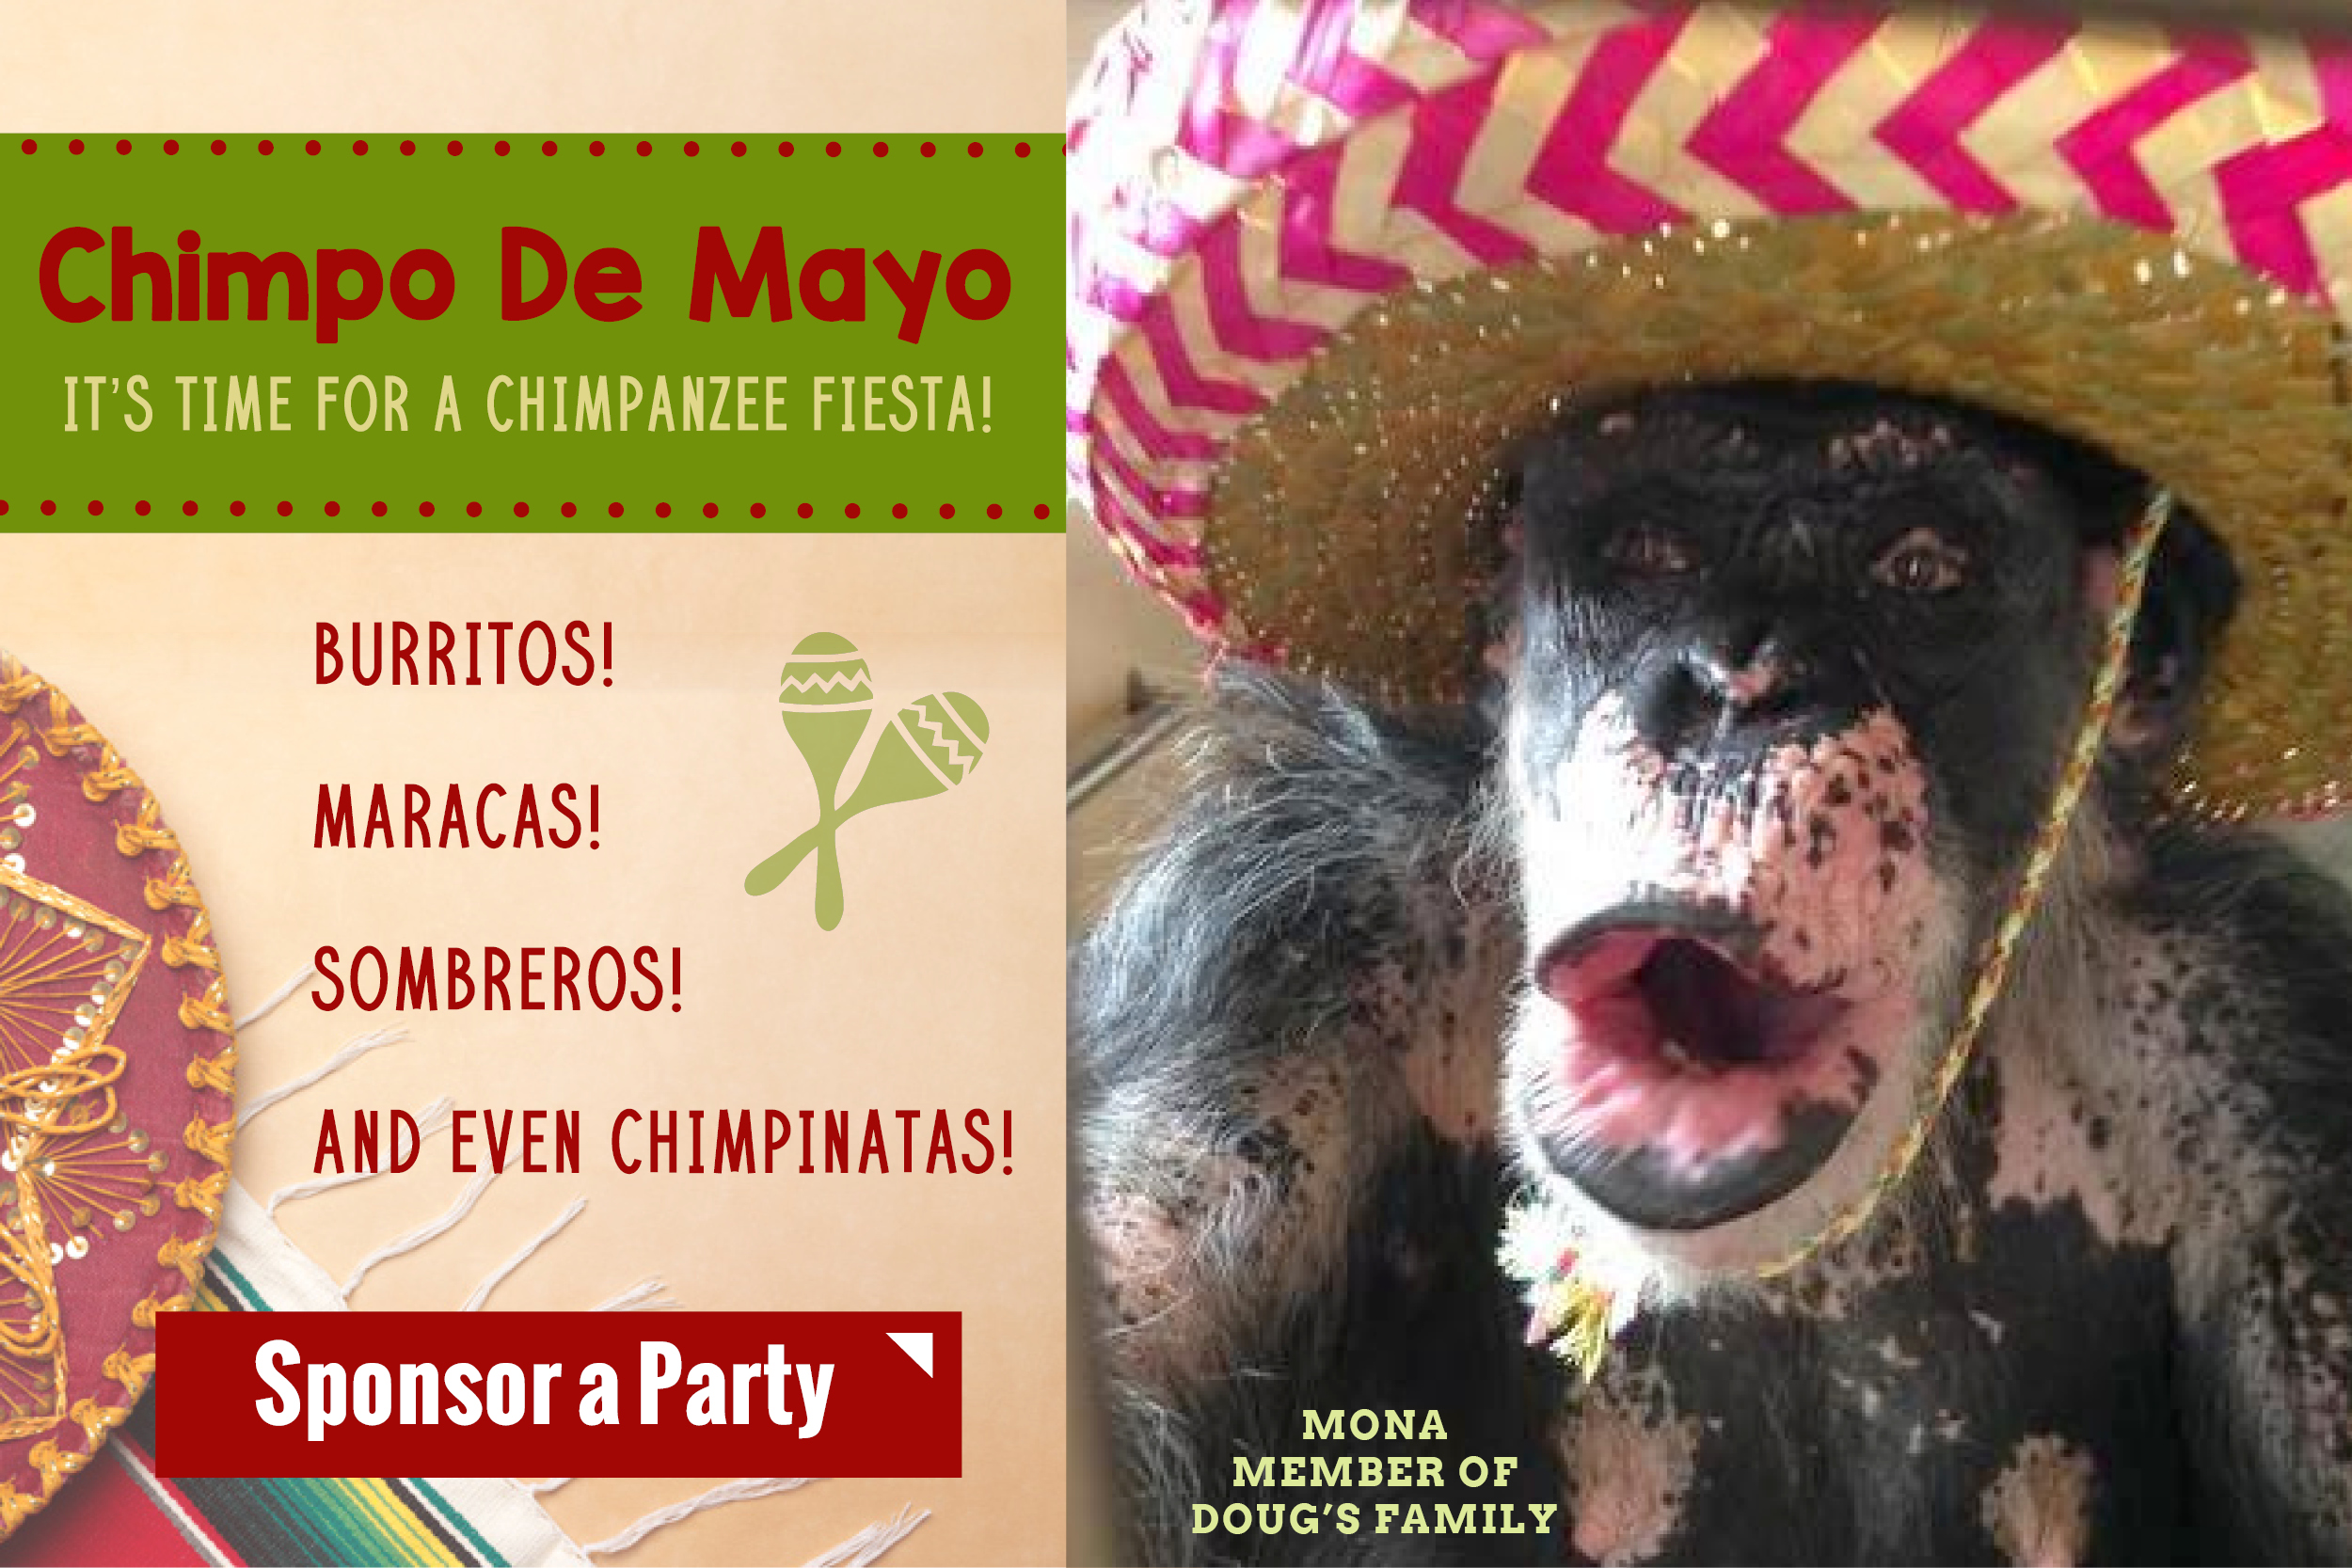 Chimpo de mayo email graphic